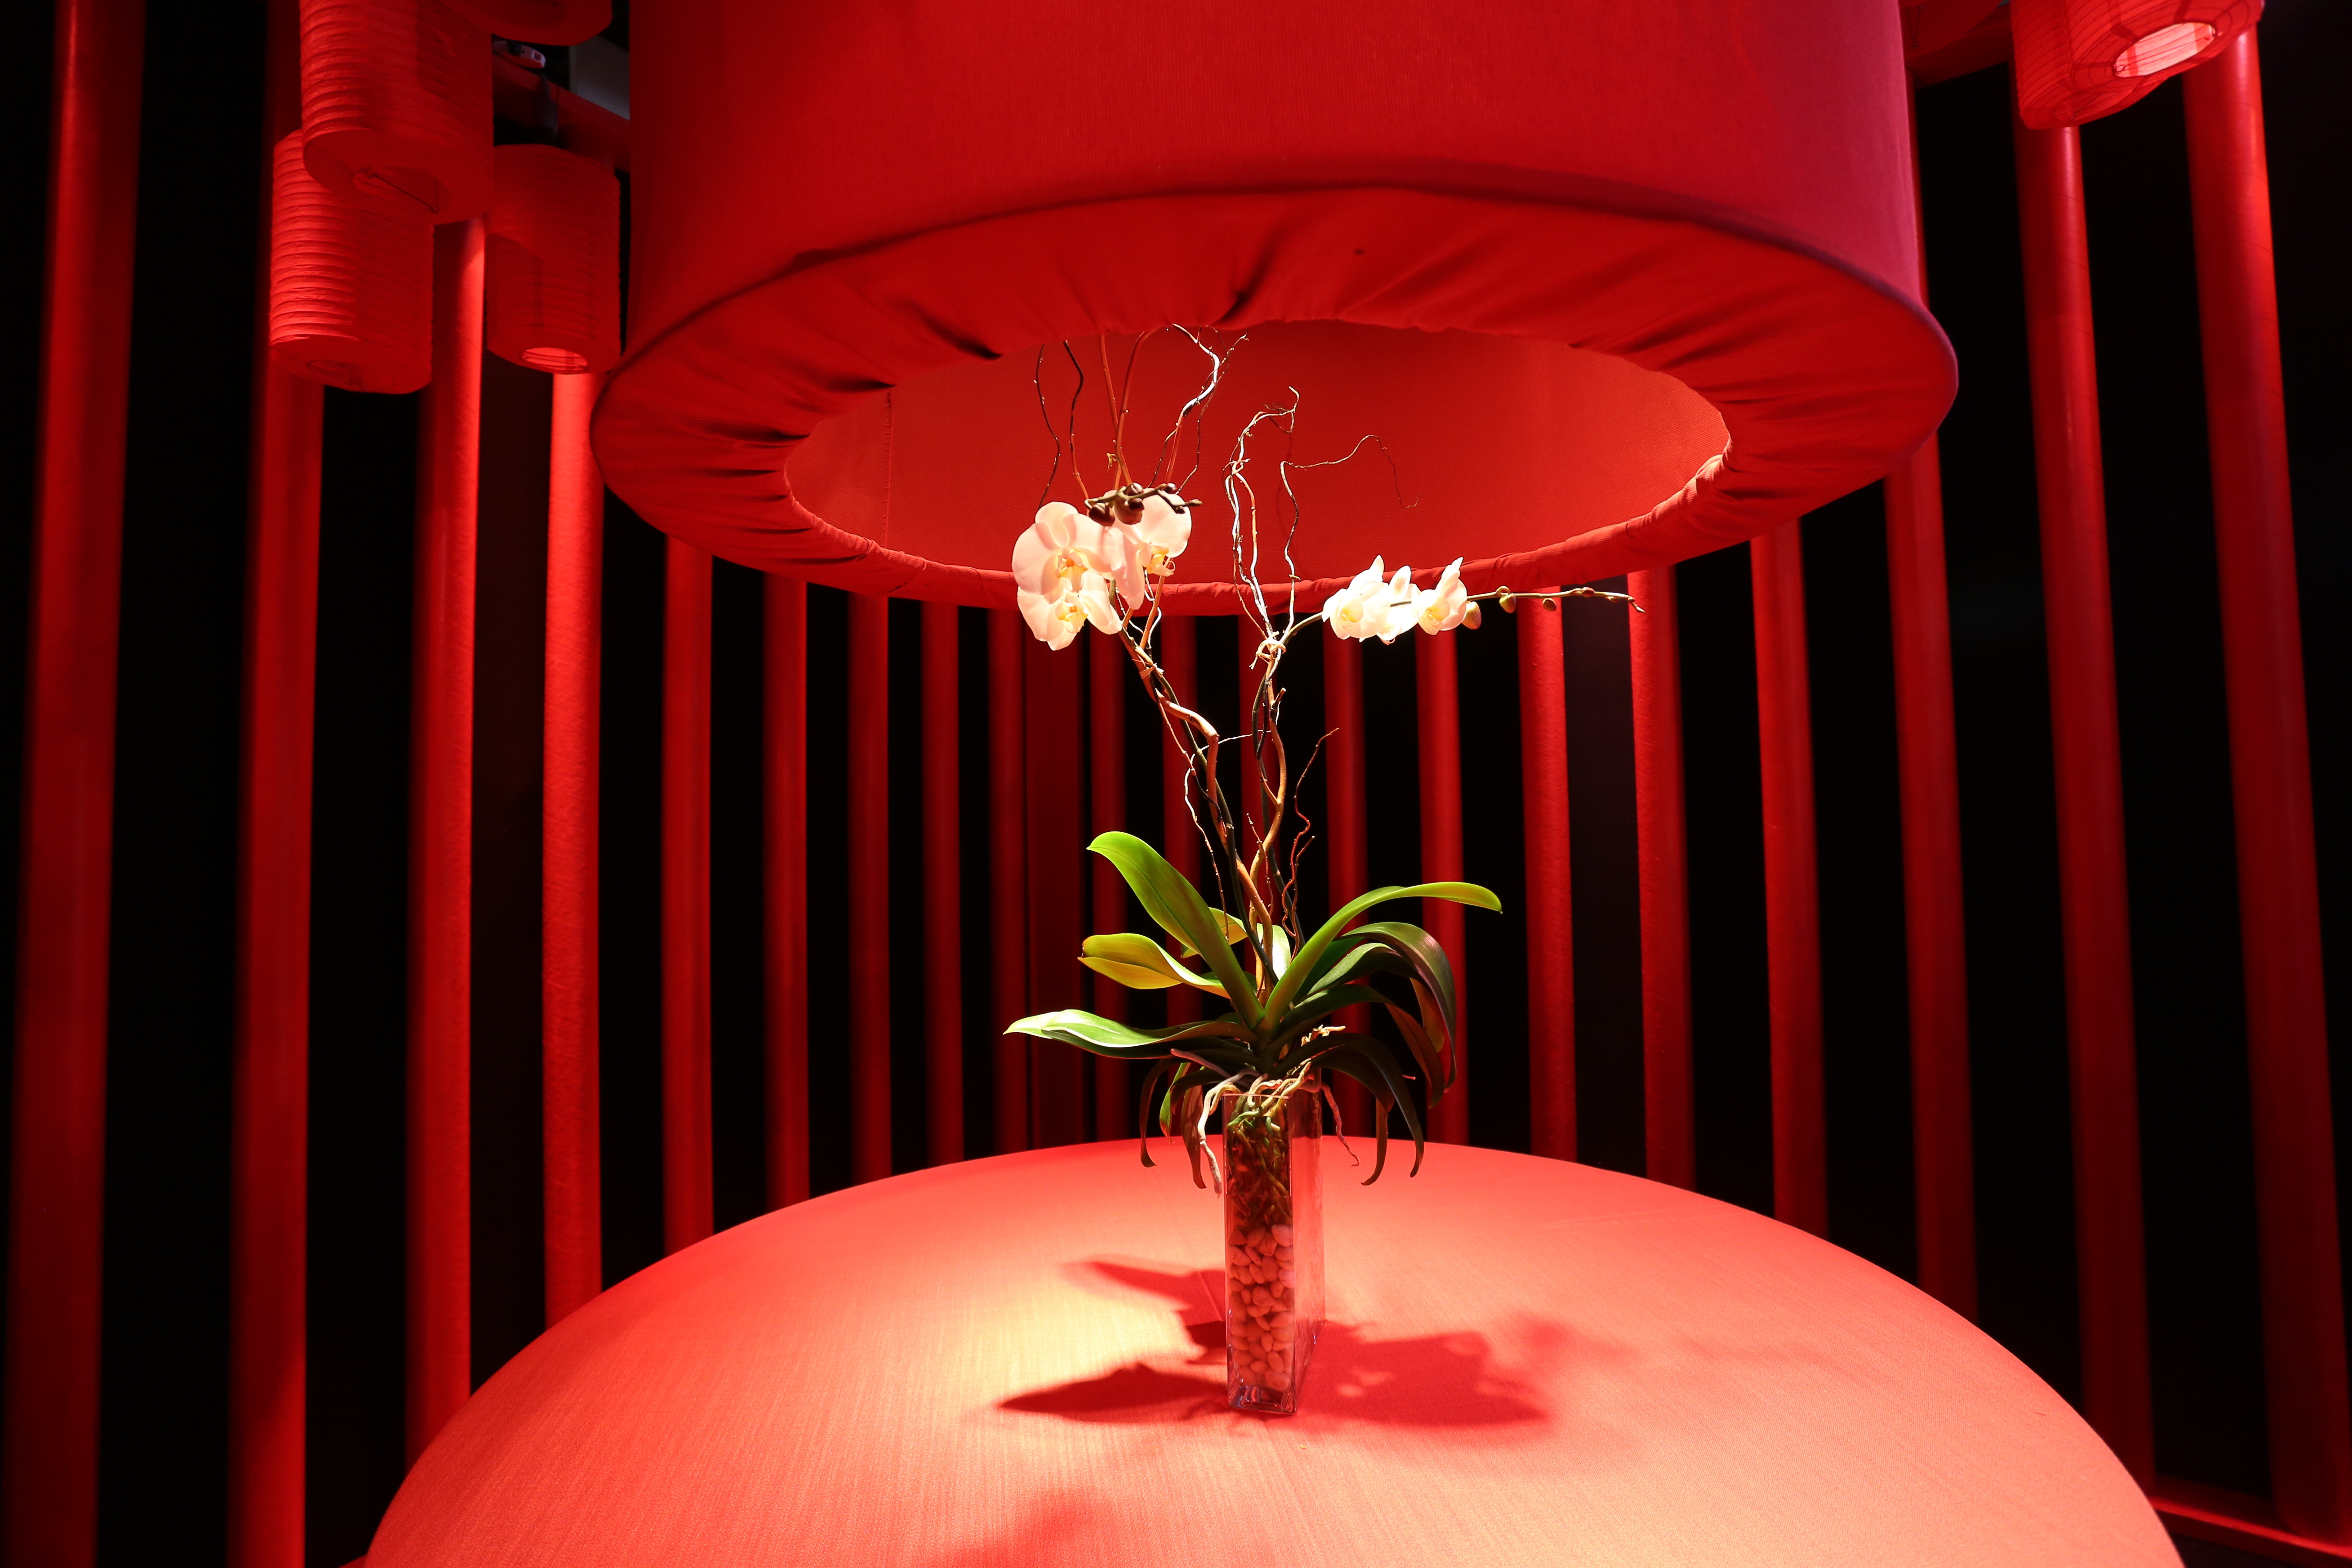 flowers in a vase in a red room on a table